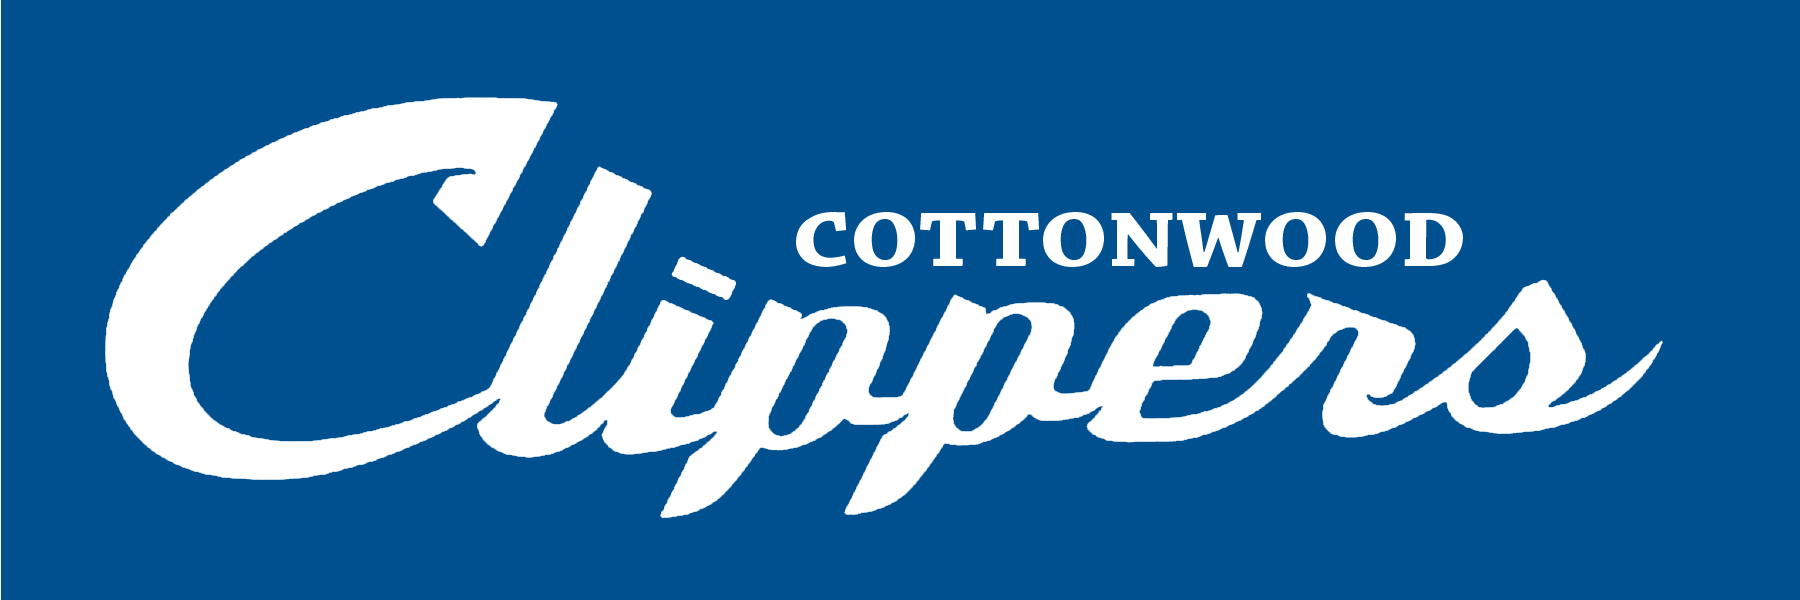 clipper-logo-1-color.jpg